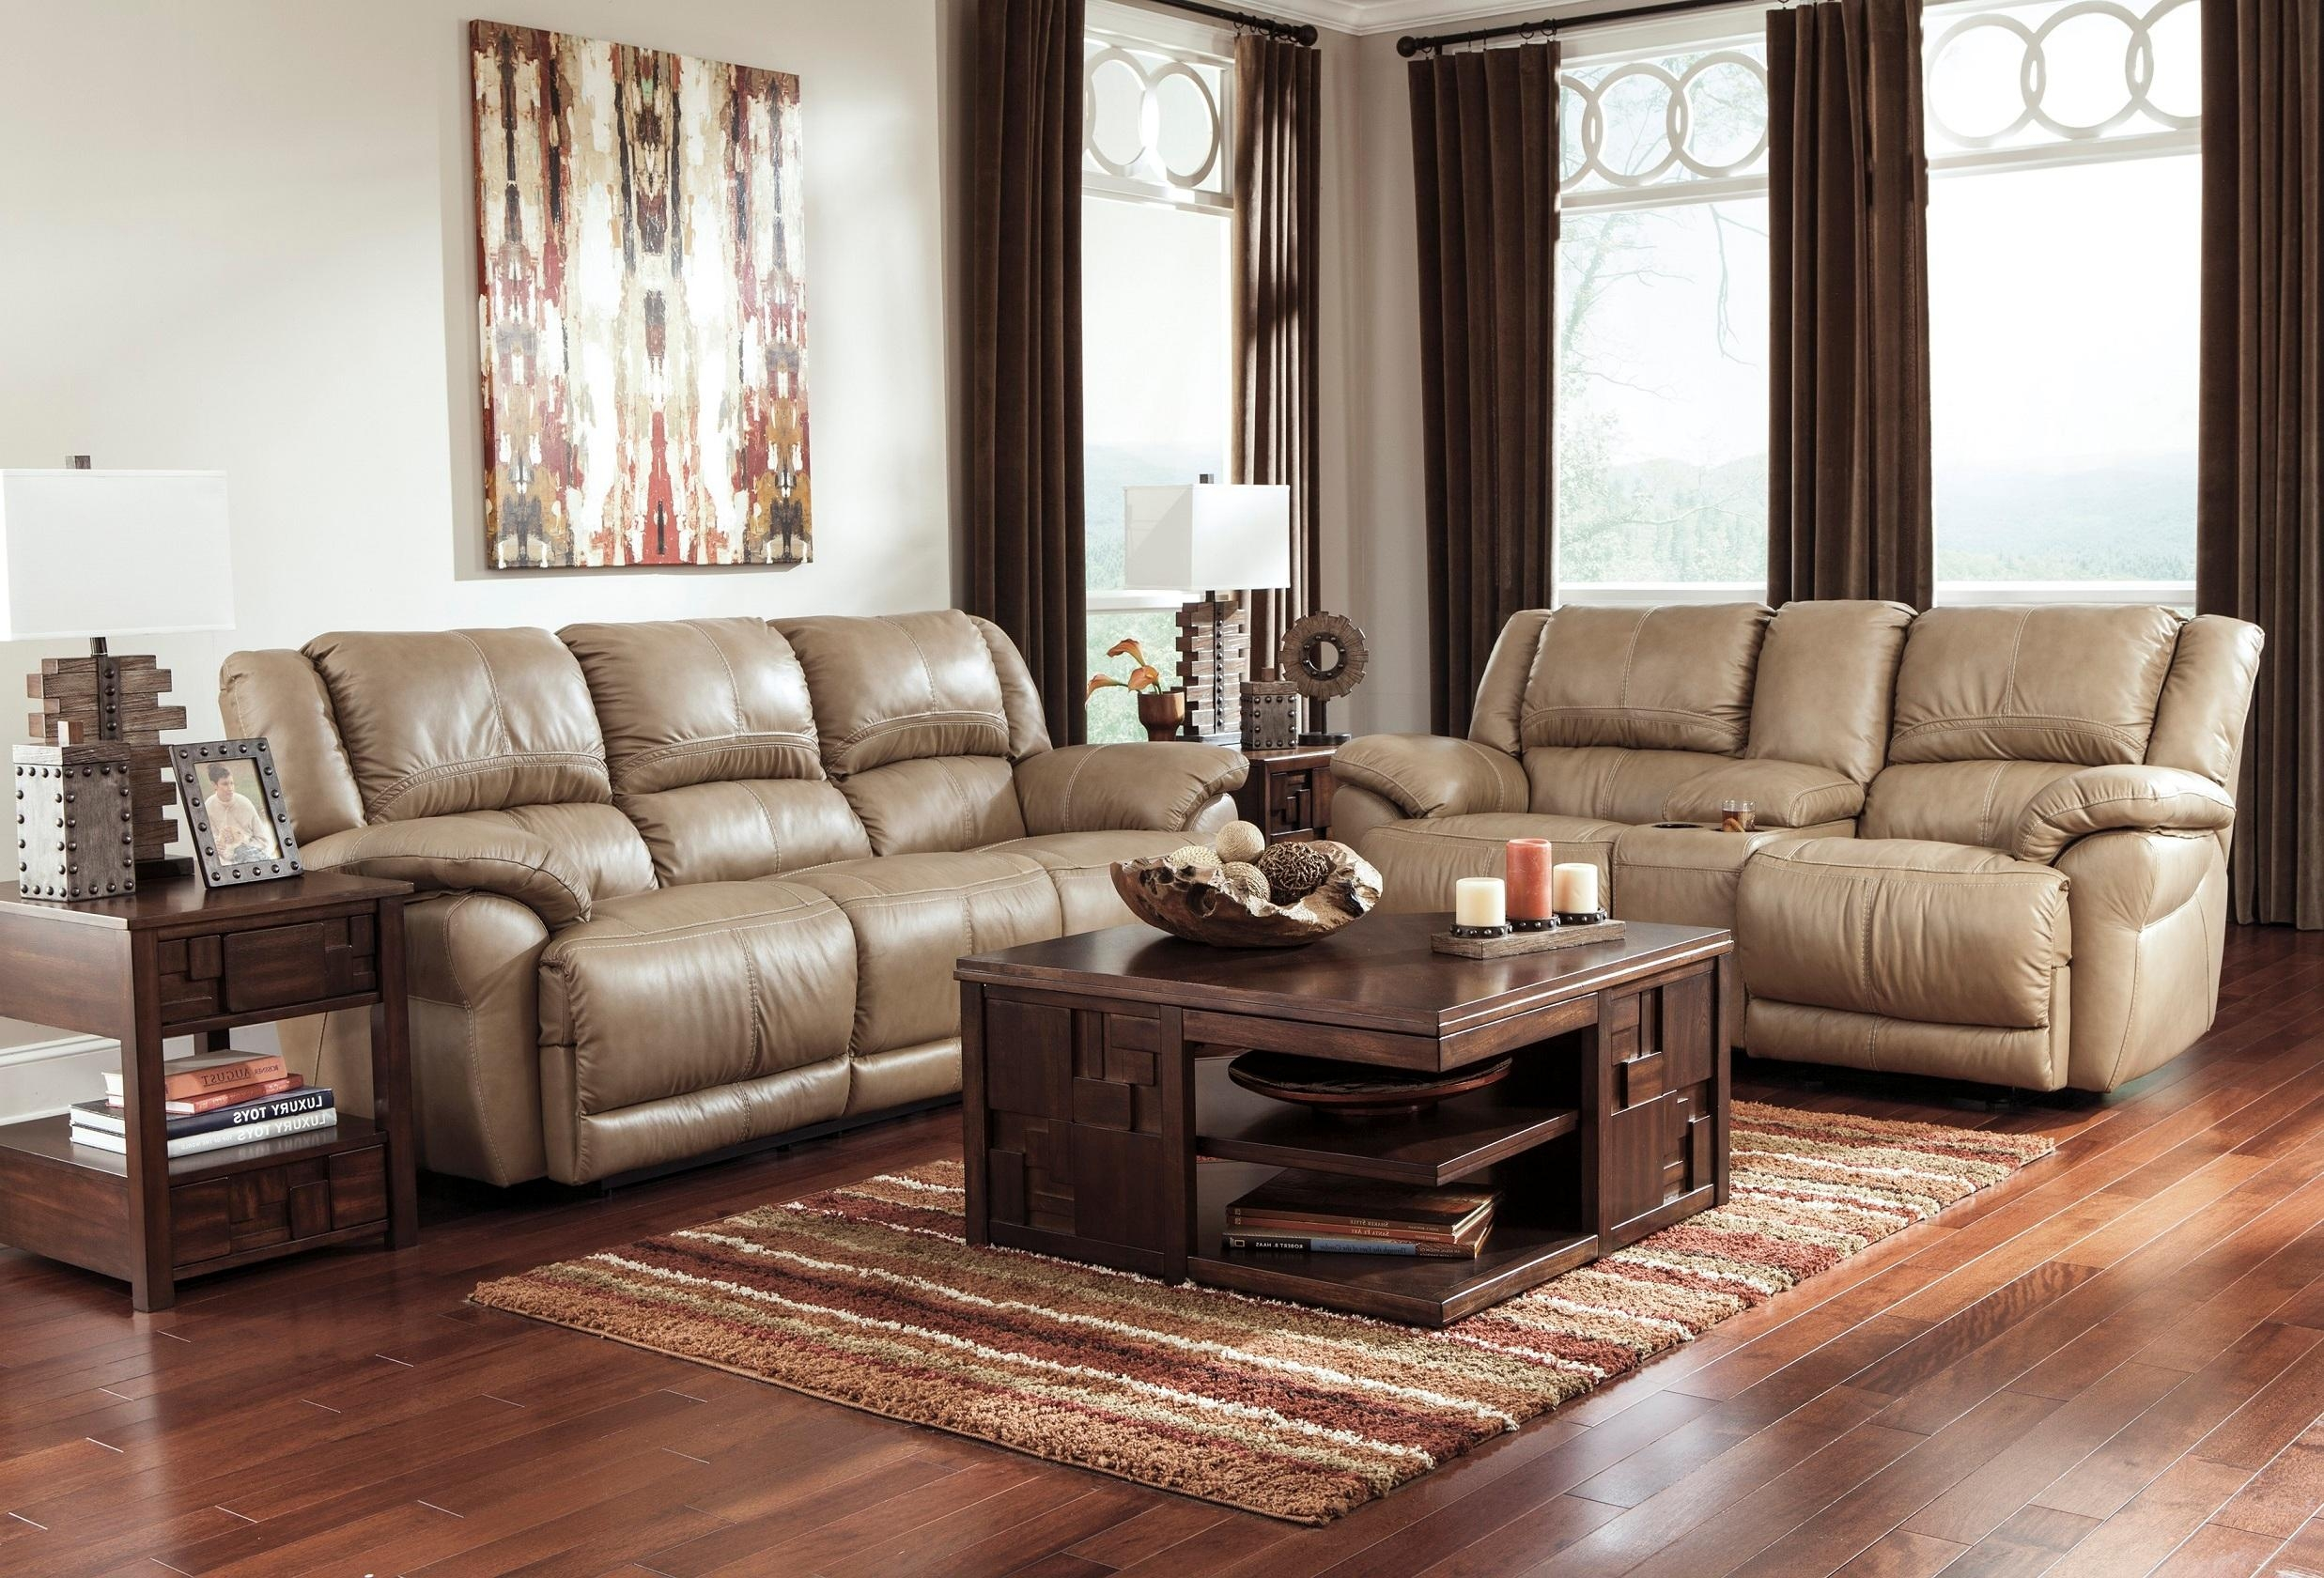 Furniture: Add Luxury To Your Home With Full Grain Leather With High Quality Leather Sectional (Image 6 of 20)